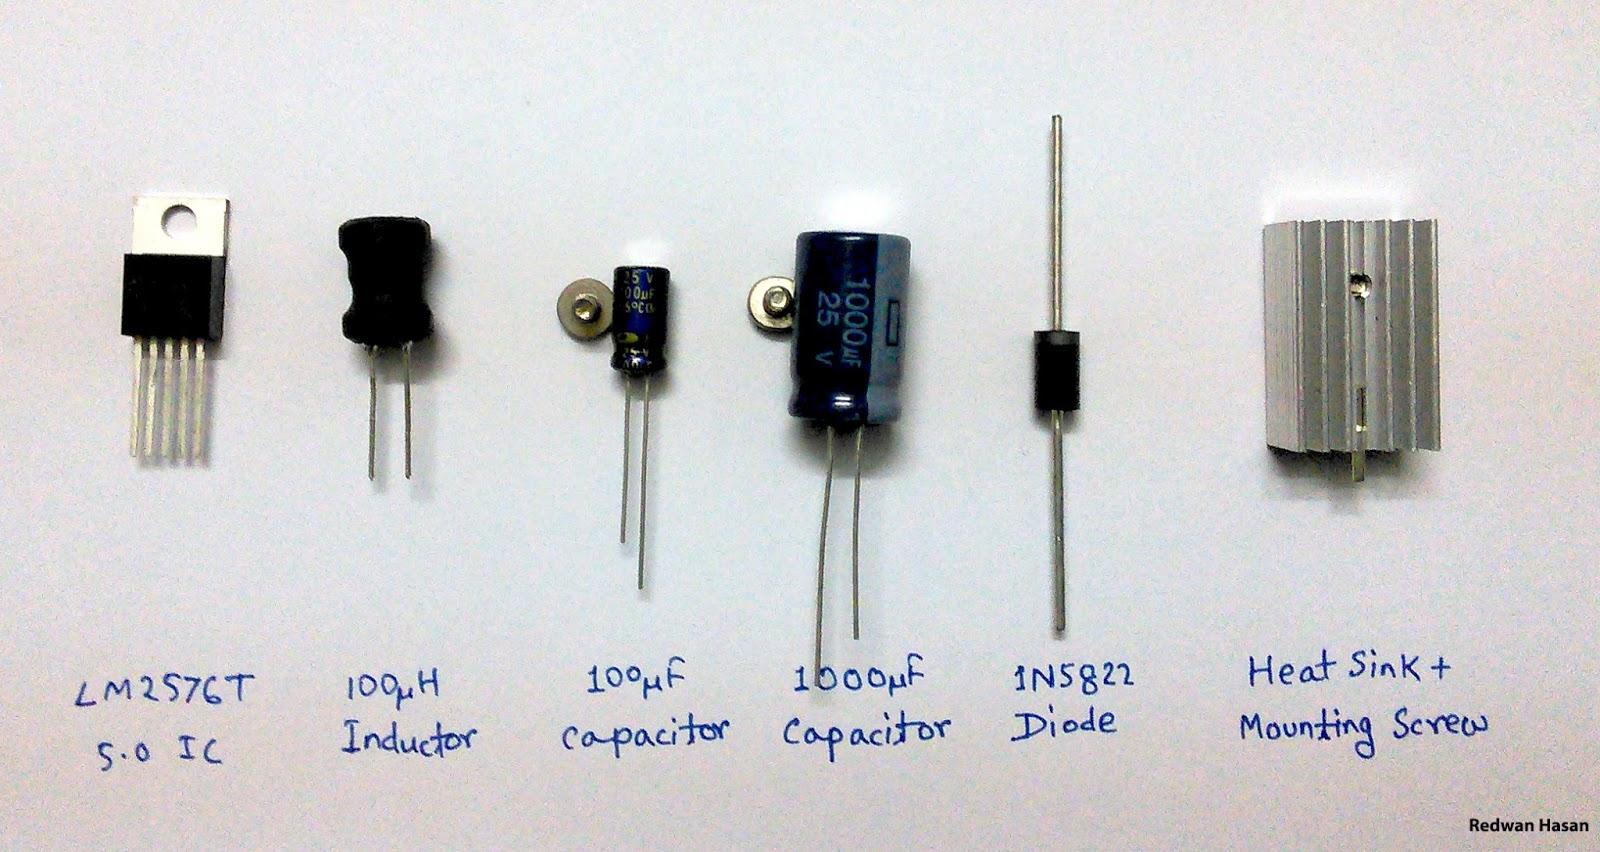 Scavengers Blog 2014 How Do Capacitors Work In A Circuit Integrated Lm2576 50 2 Capacitor One 100uf 50v 1000uf 16vlow Esr Will Be Better 3 Inductor 100uh